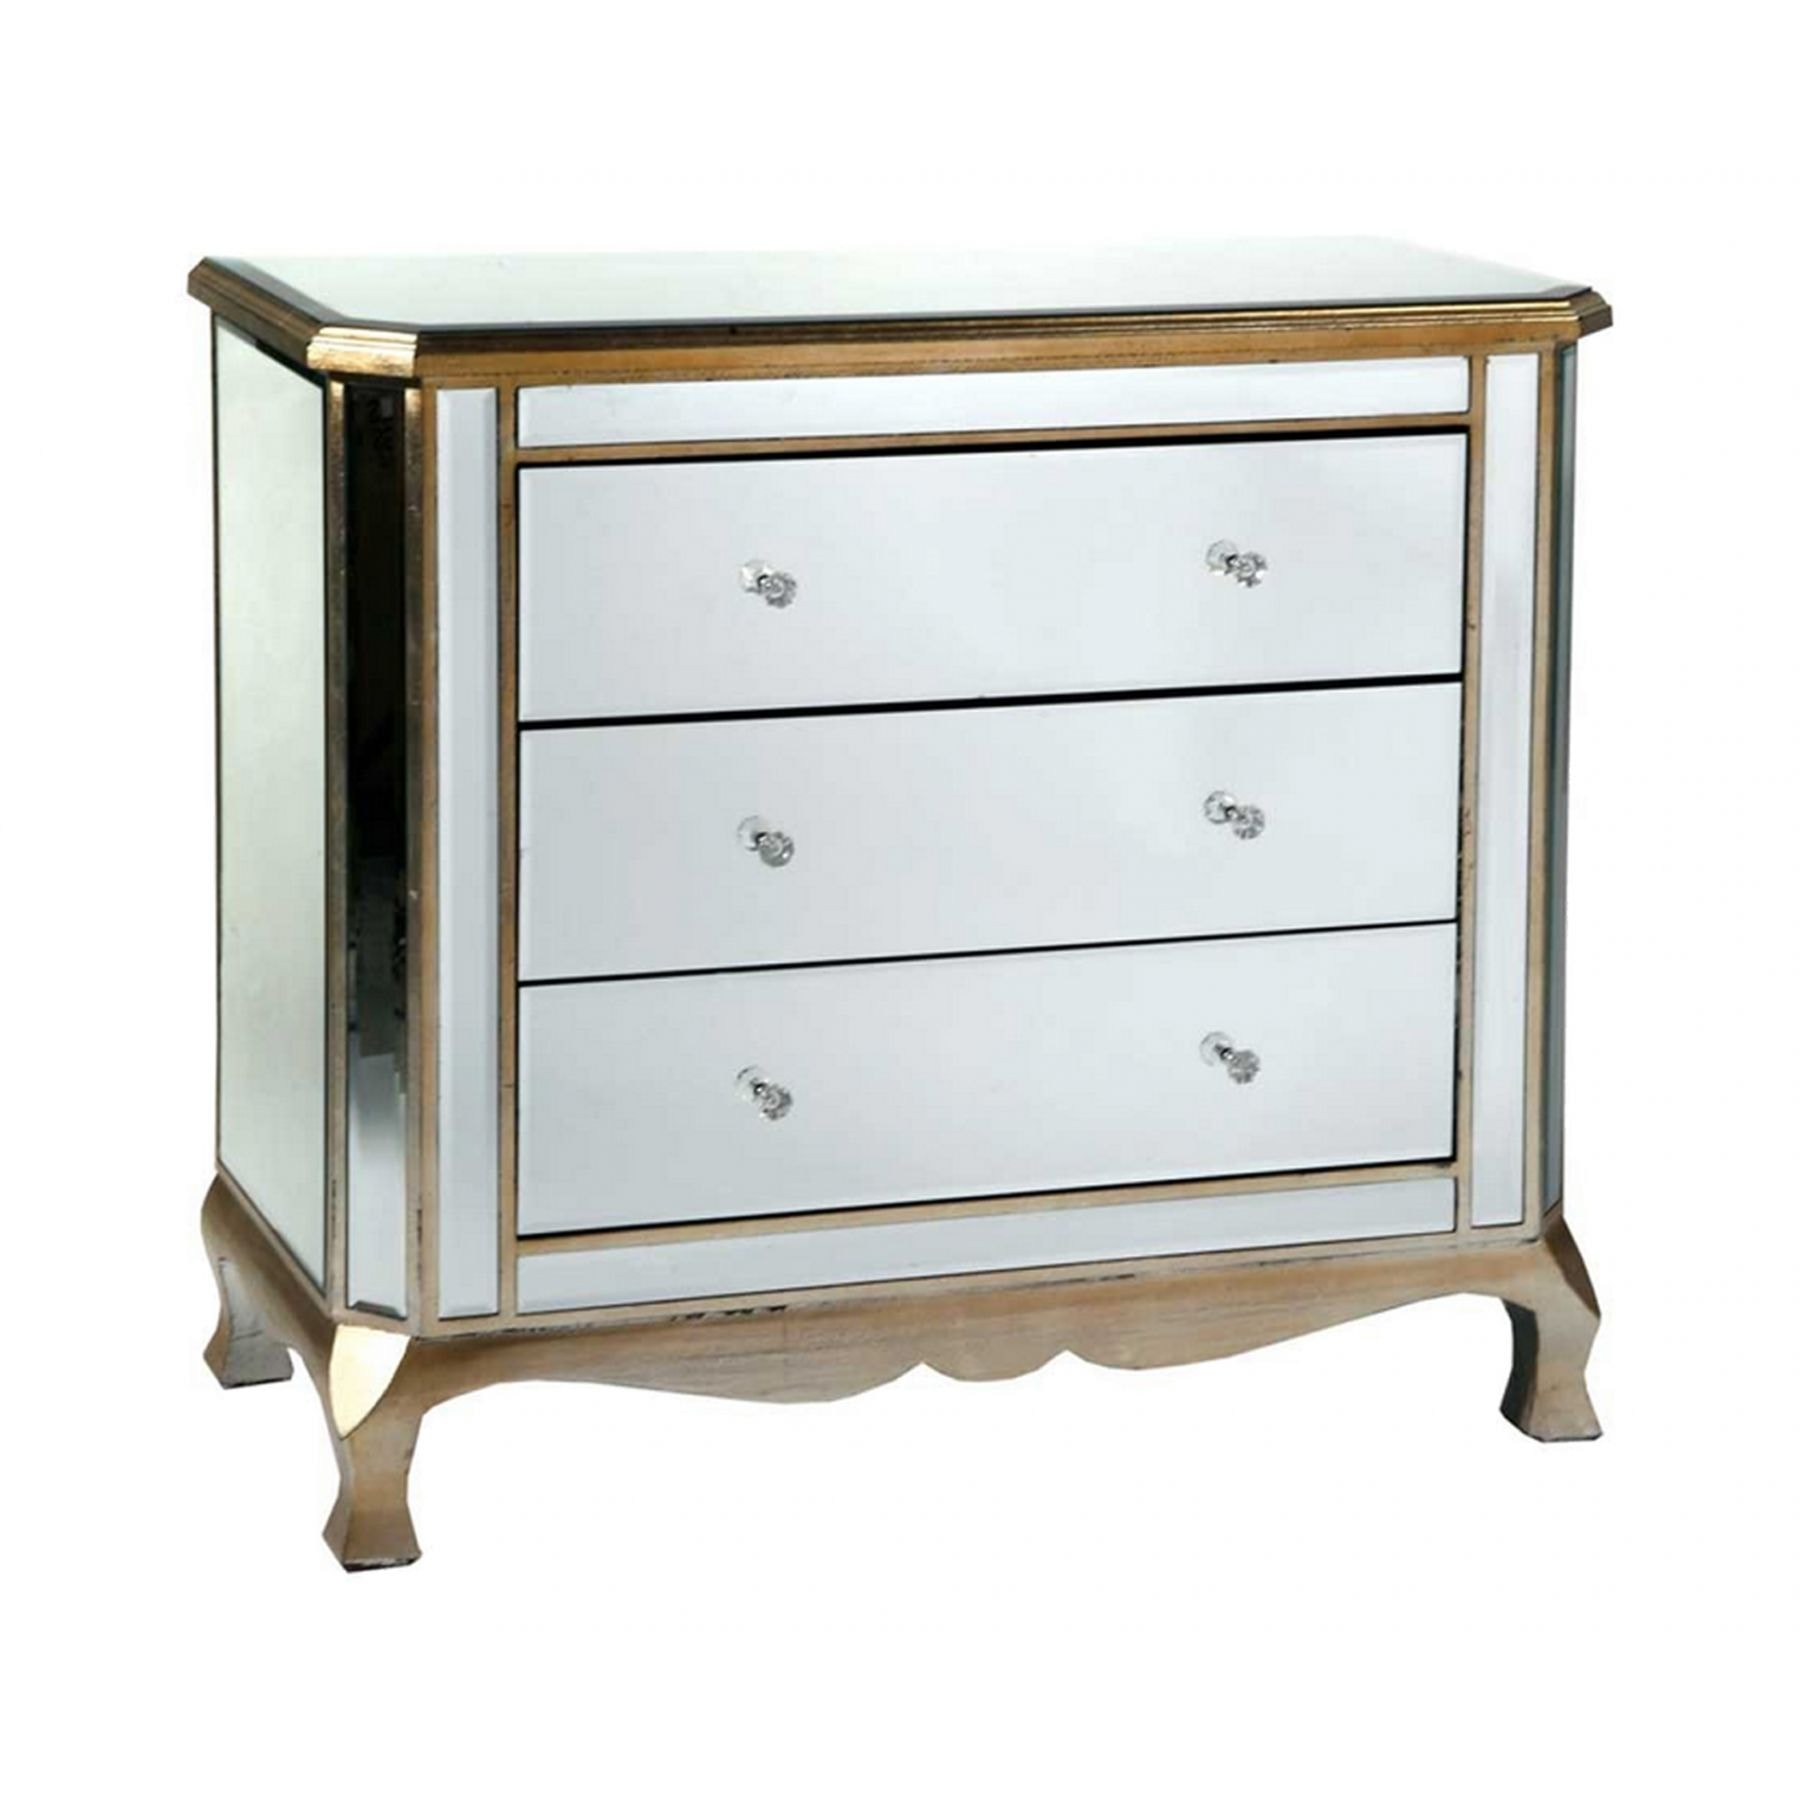 Mirrored Chest Of Drawers Gold Trim Venetian Furniture